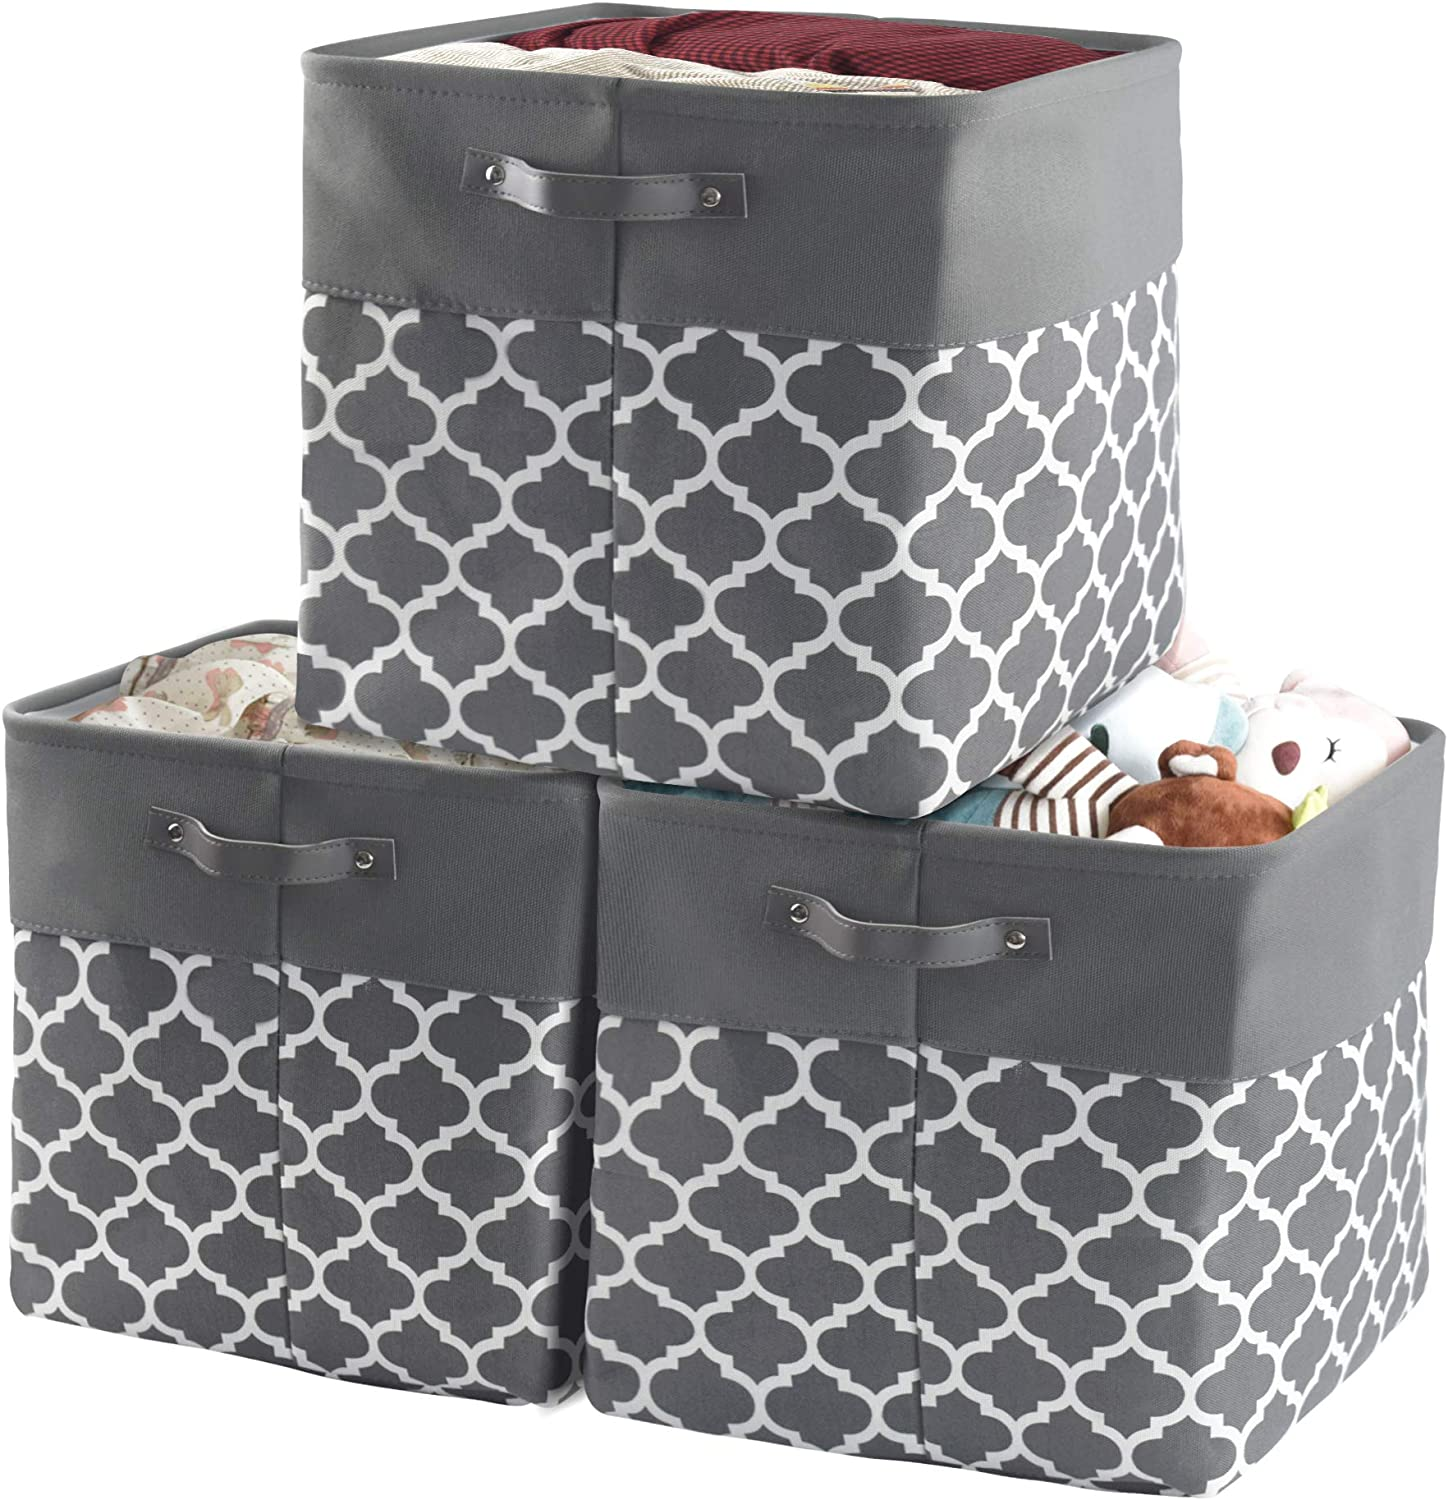 homyfort Storage Basket Bin 3 Pack, 13''x13'' Collapsible Storage Cube Box Canvas Fabric Organizer with Handles for Bedroom, Office, Closet, Toys, Clothes, Kids Room, Nursery(Grey)